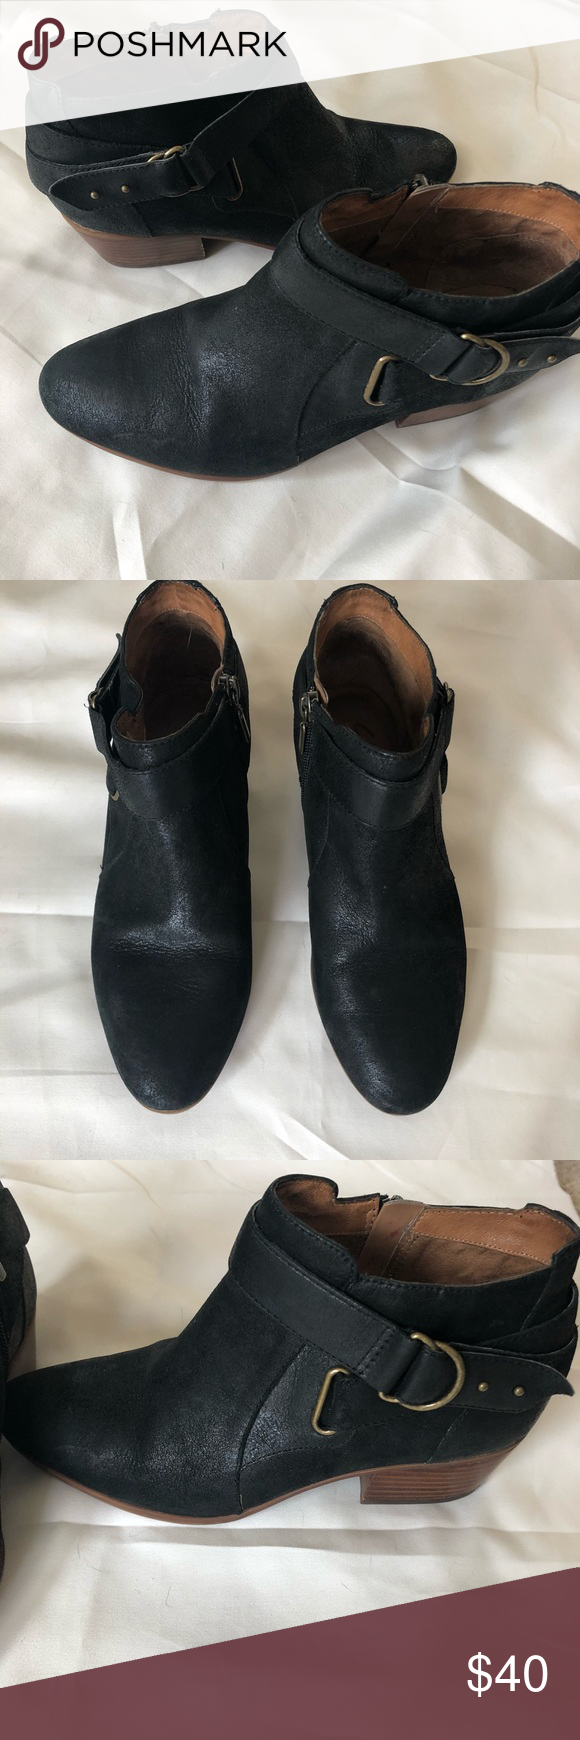 Clark's Indigo Black Booties Clark's Brand. Indigo design Black suede  material with brass detailing Leather uppers Made in China Size 8 Some  scuffing on ...